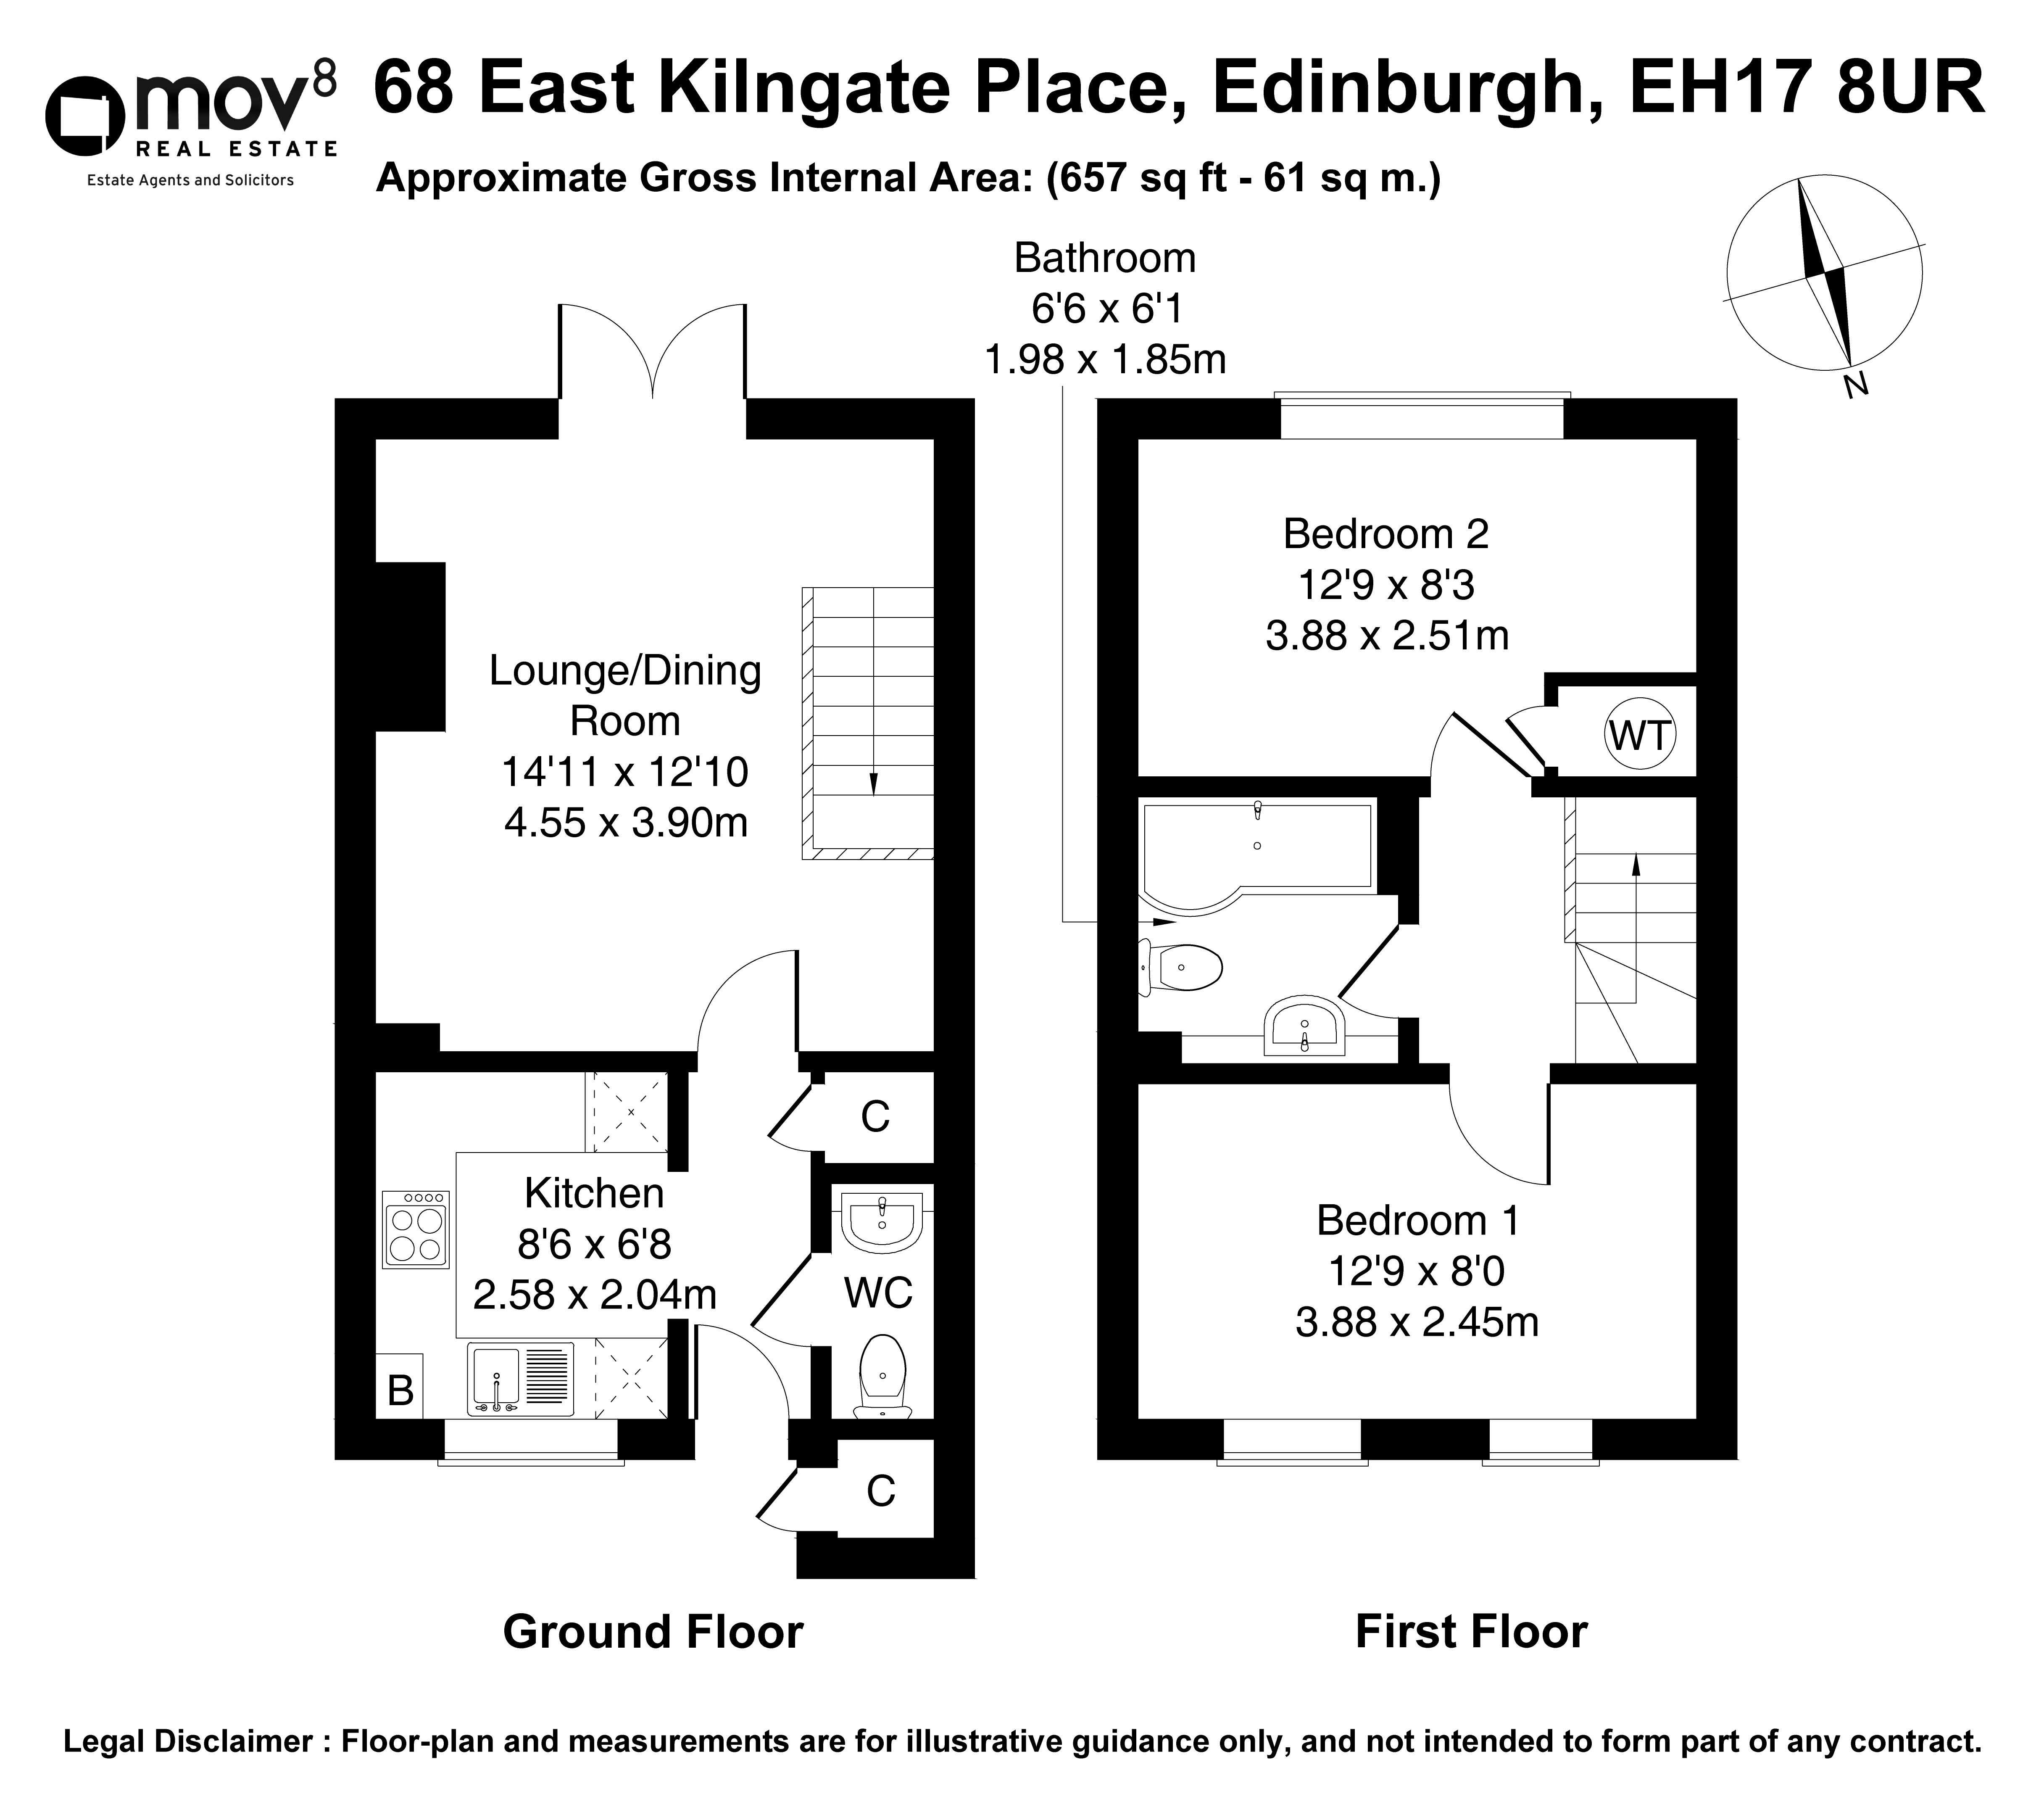 Floorplan 1 of 68 East Kilngate Place, Gilmerton, Edinburgh, EH17 8UR